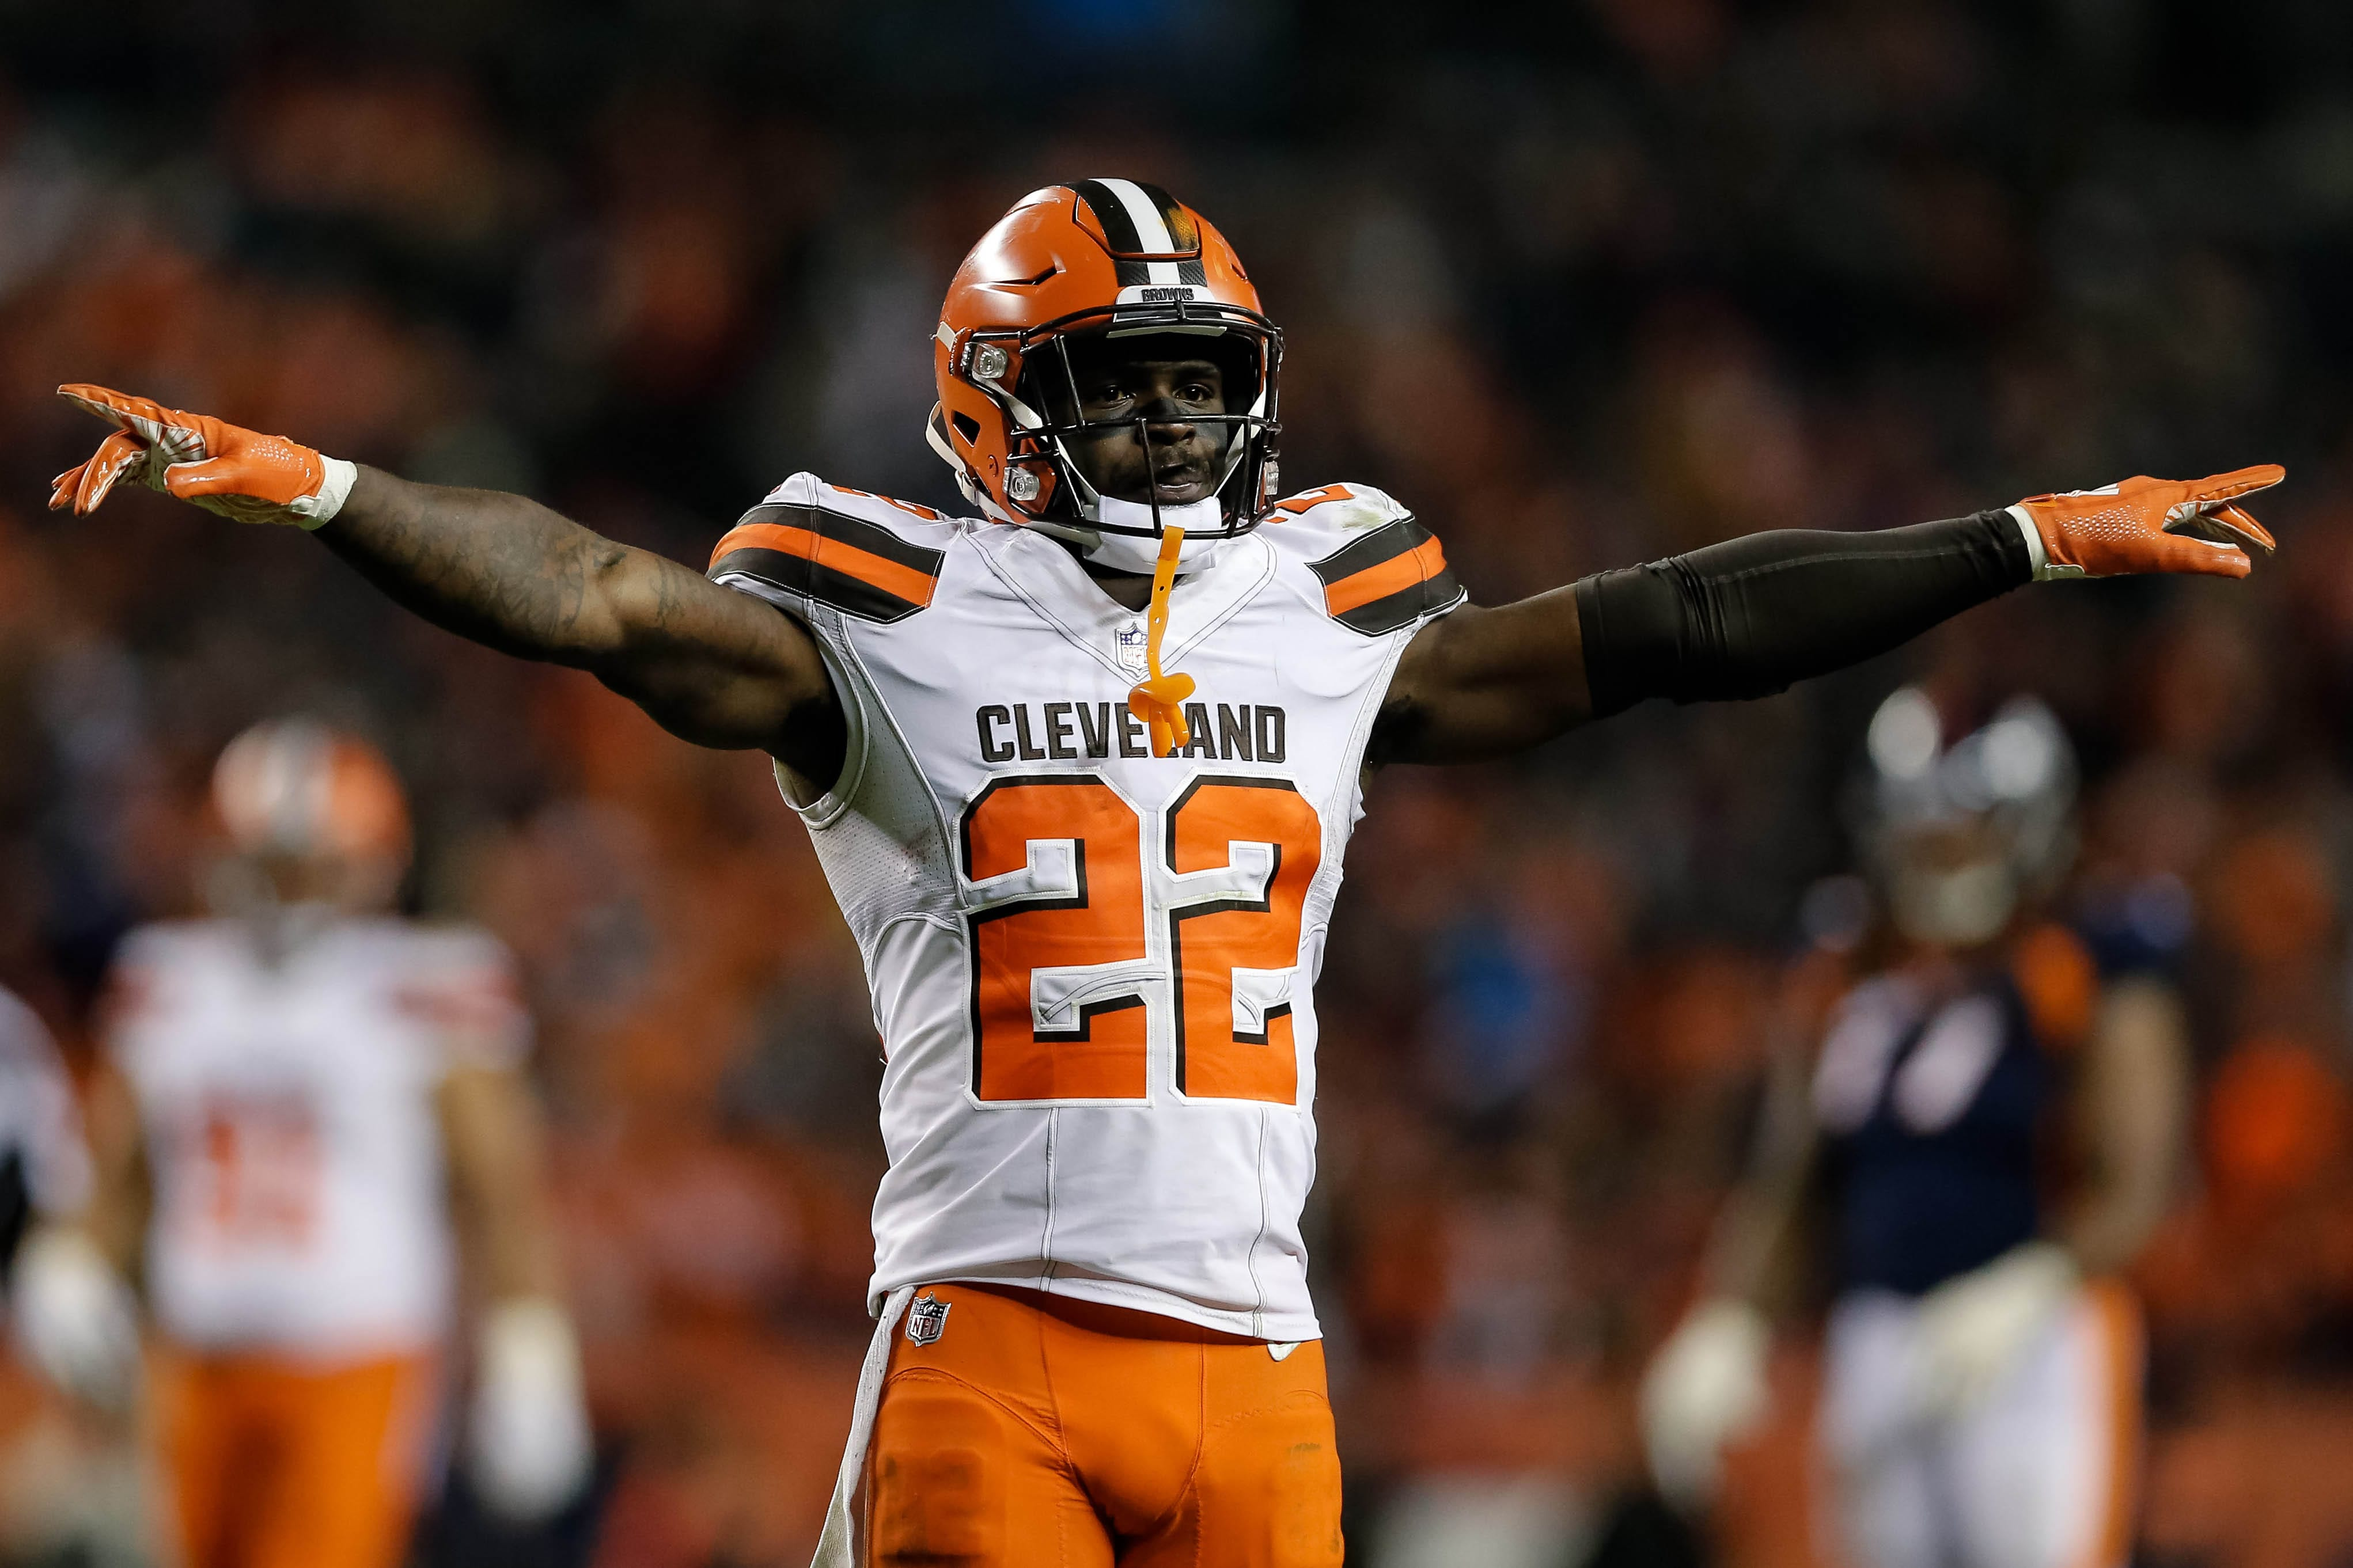 The New York Giants acquired Jabrill Peppers in the Odell Beckham Jr. trade.